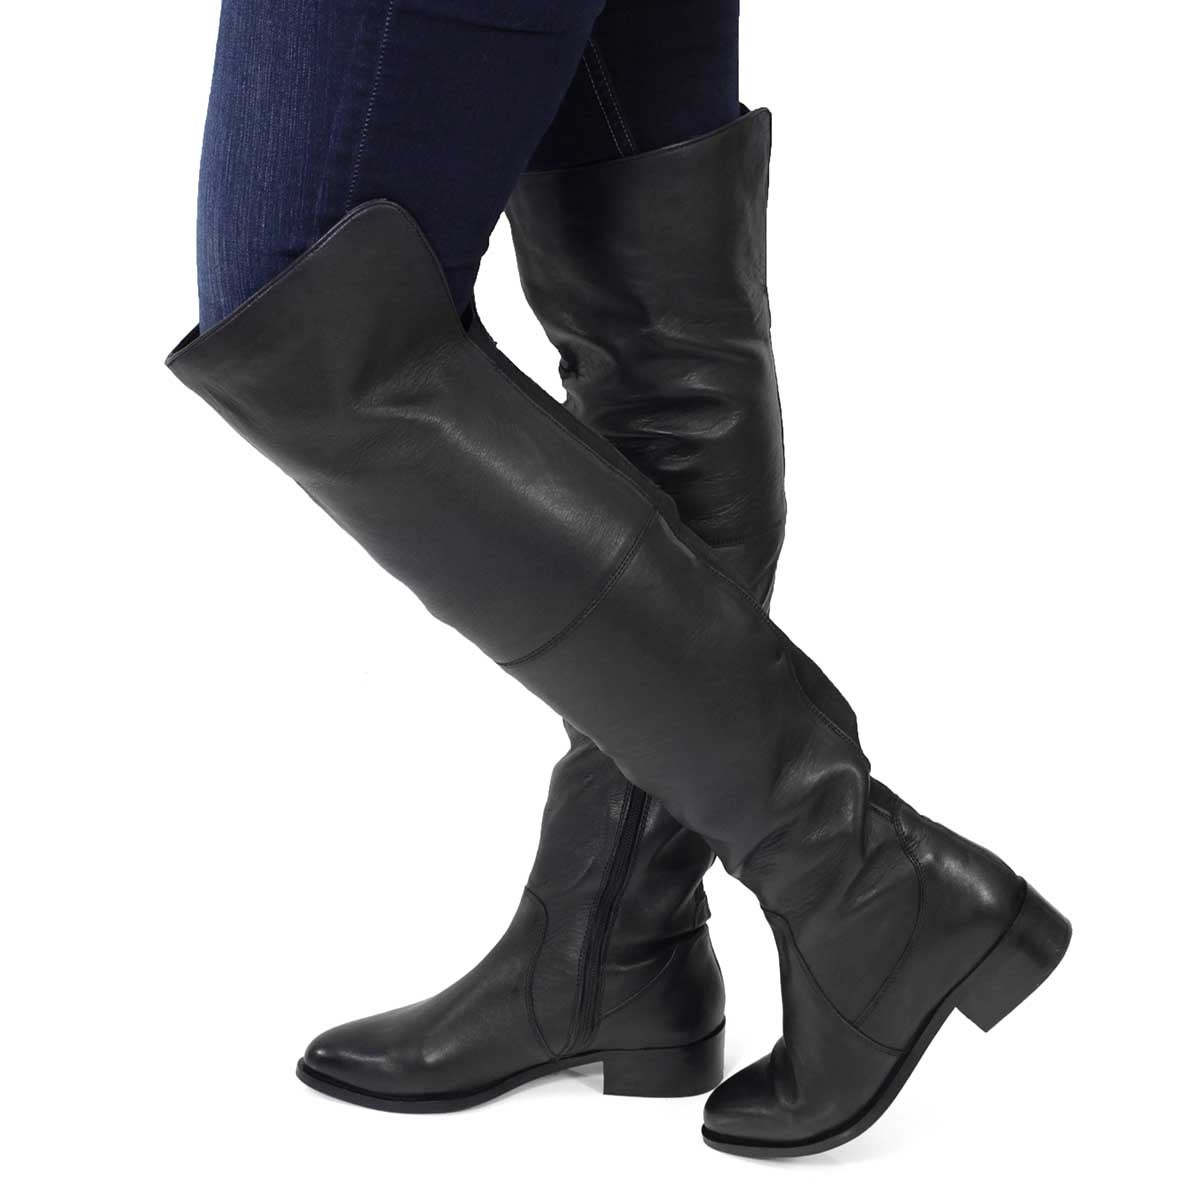 Lds Lainey black knee high boot